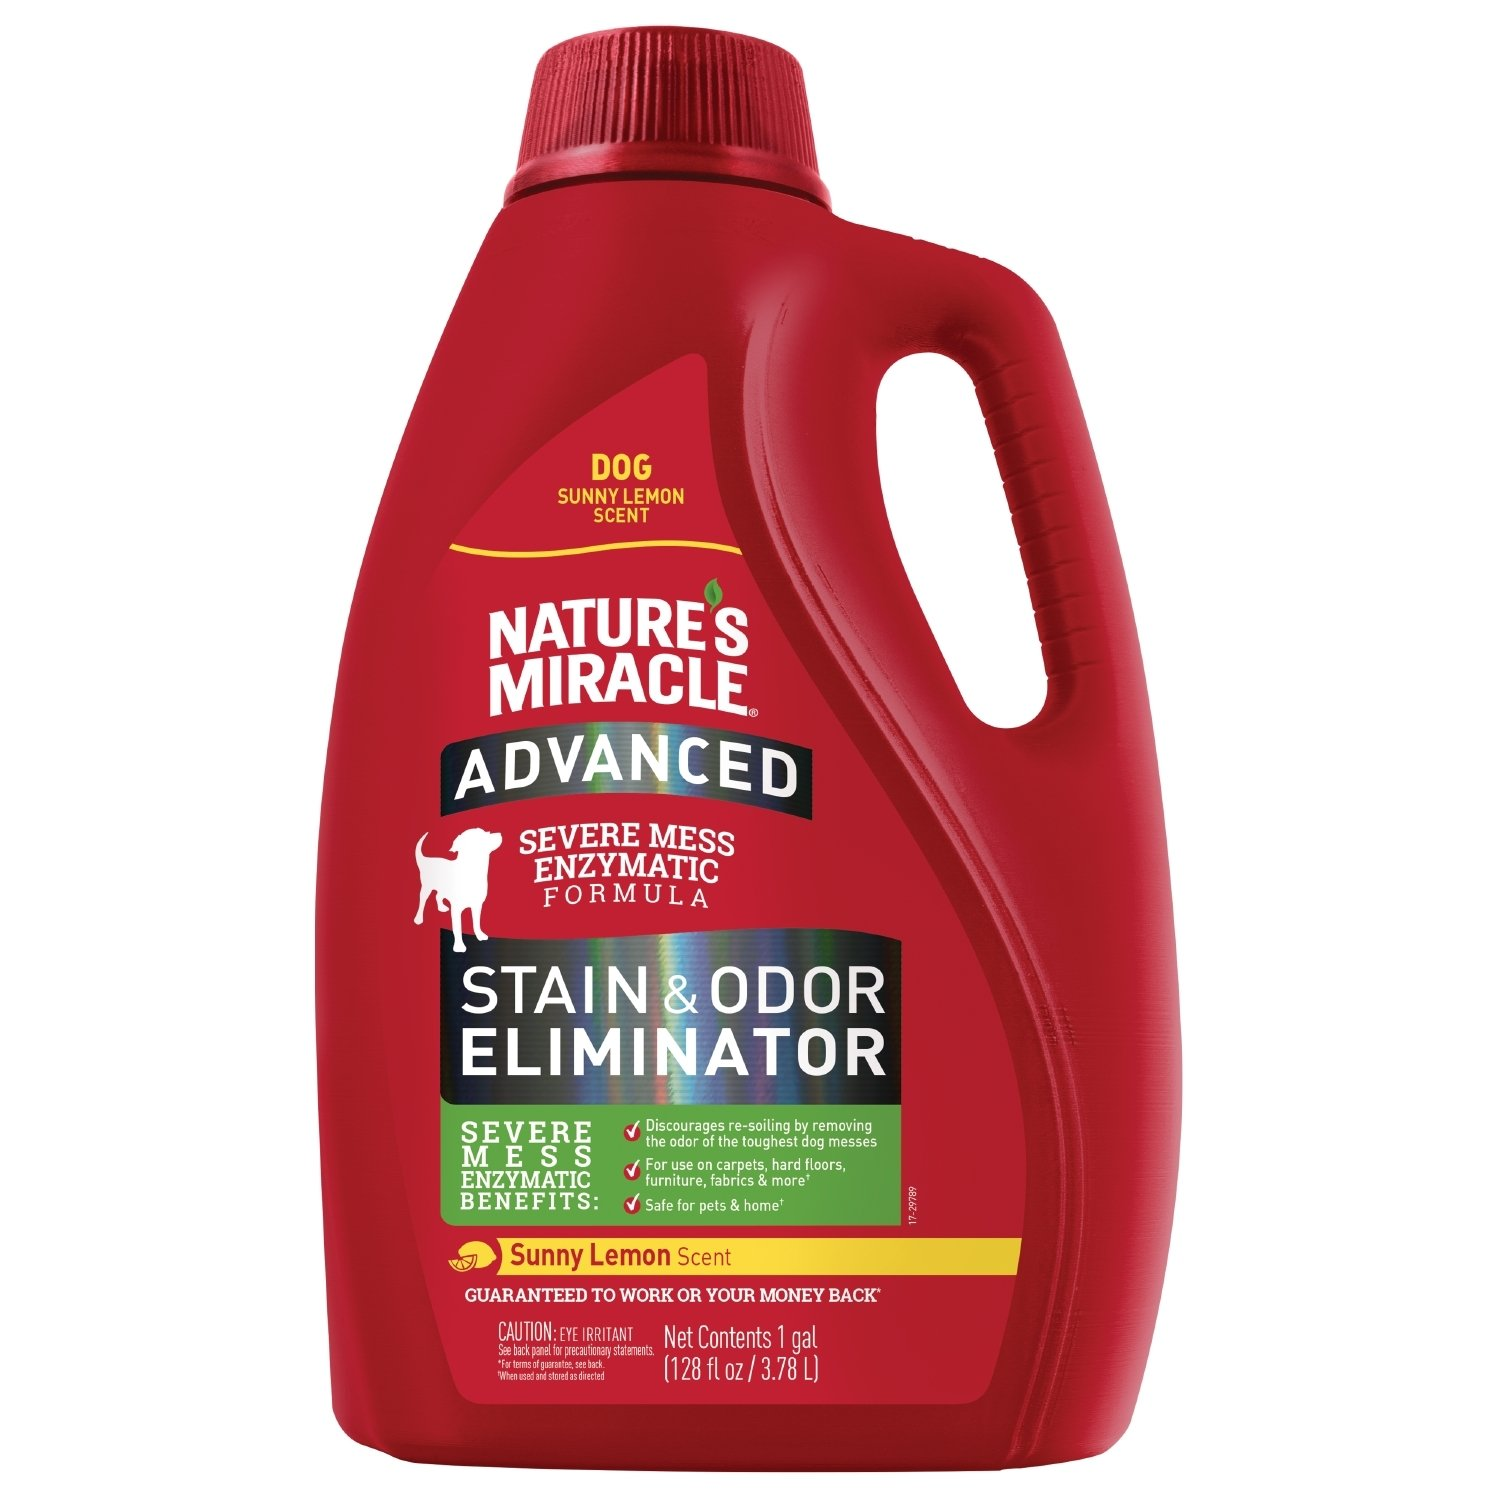 Nature's Miracle P-98145 Advanced Dog Stain and Odor Remover by Nature's Miracle